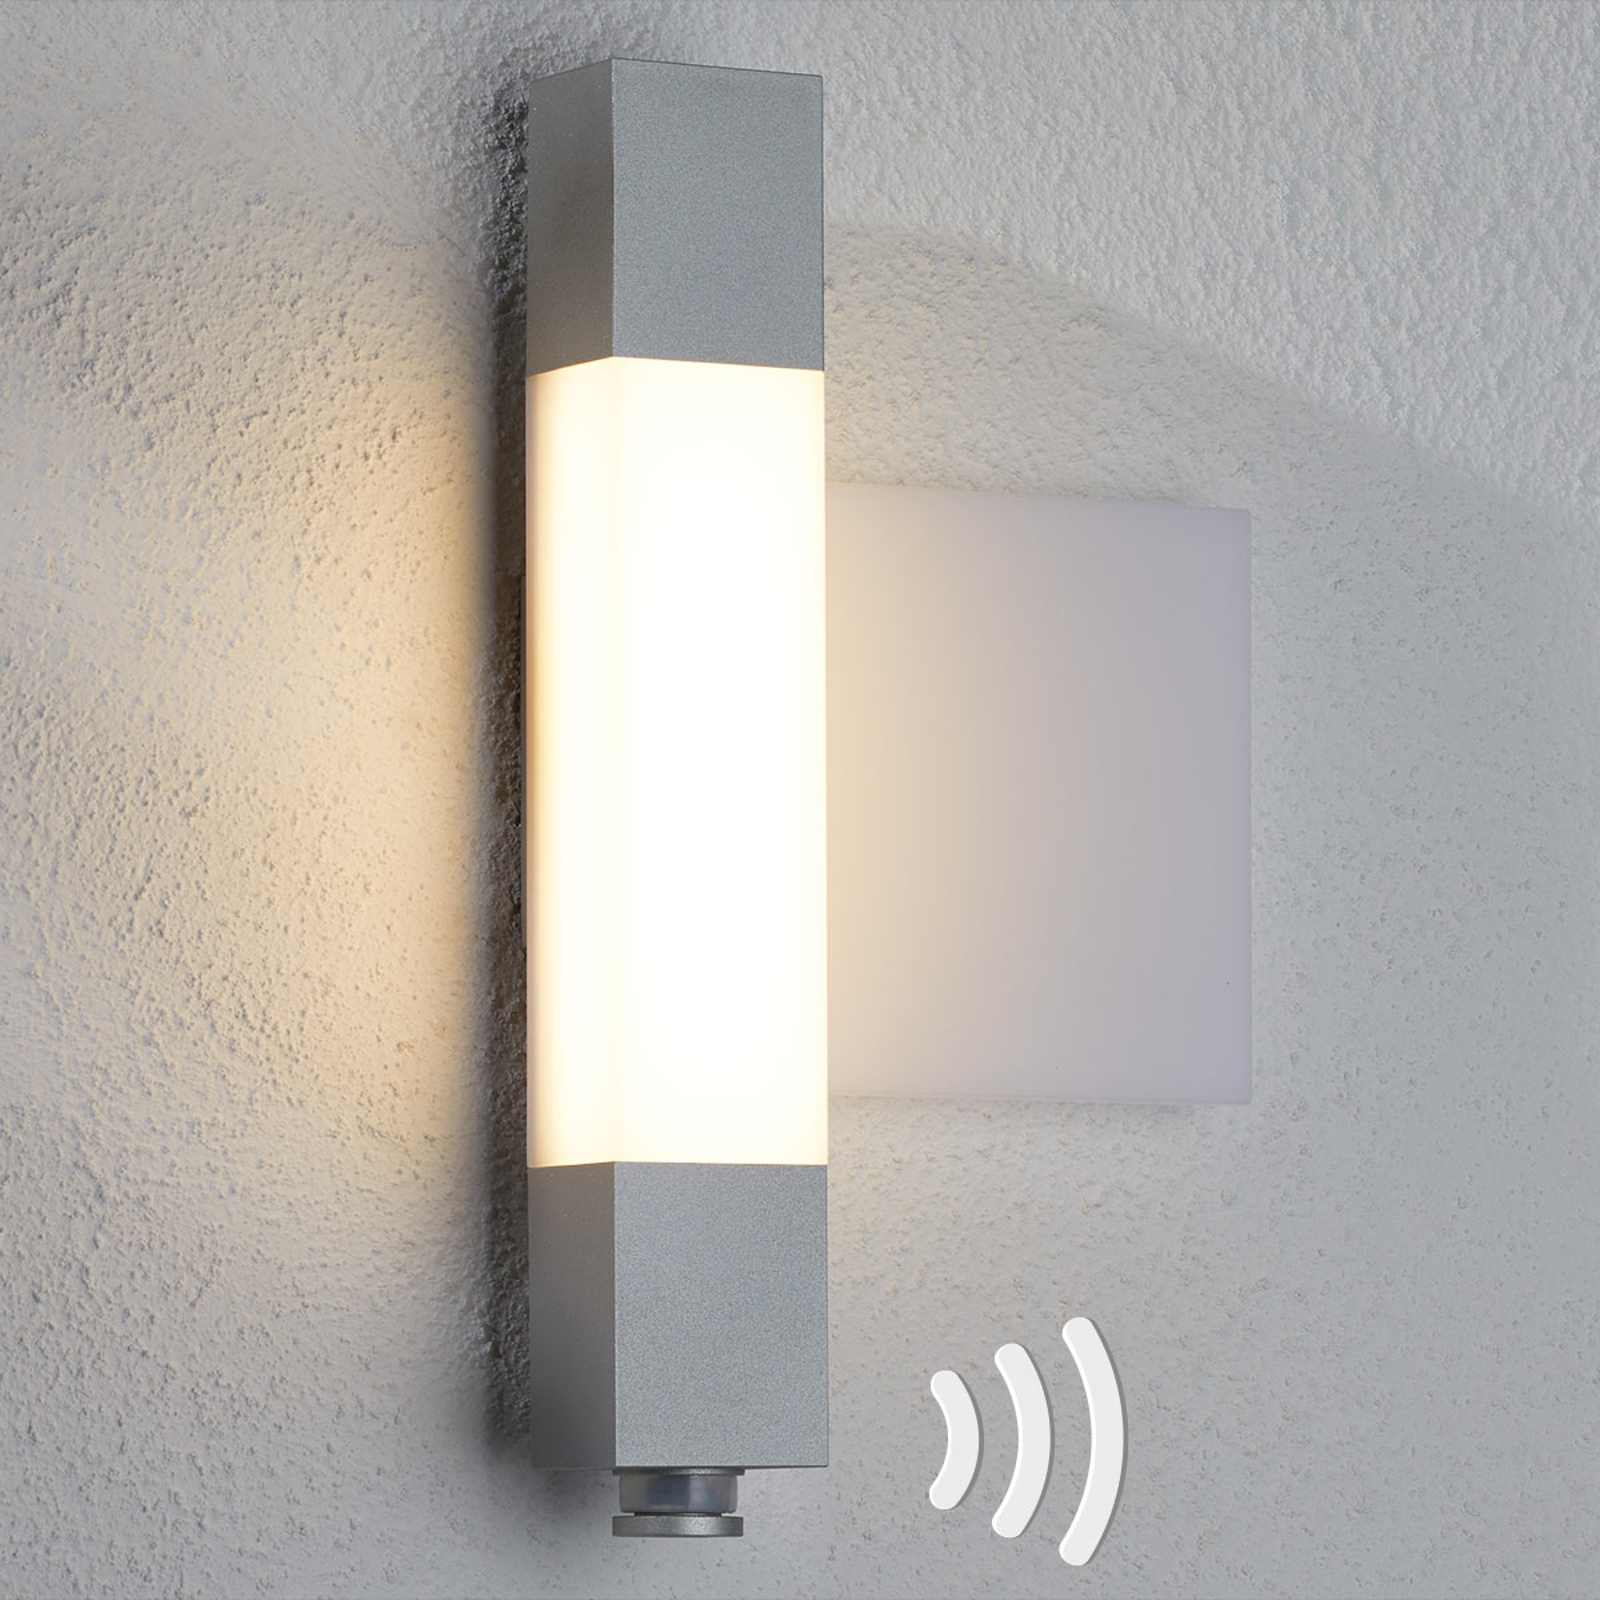 Image of: Steinel L630 Led Outdoor Wall Light House Number Lights Co Uk